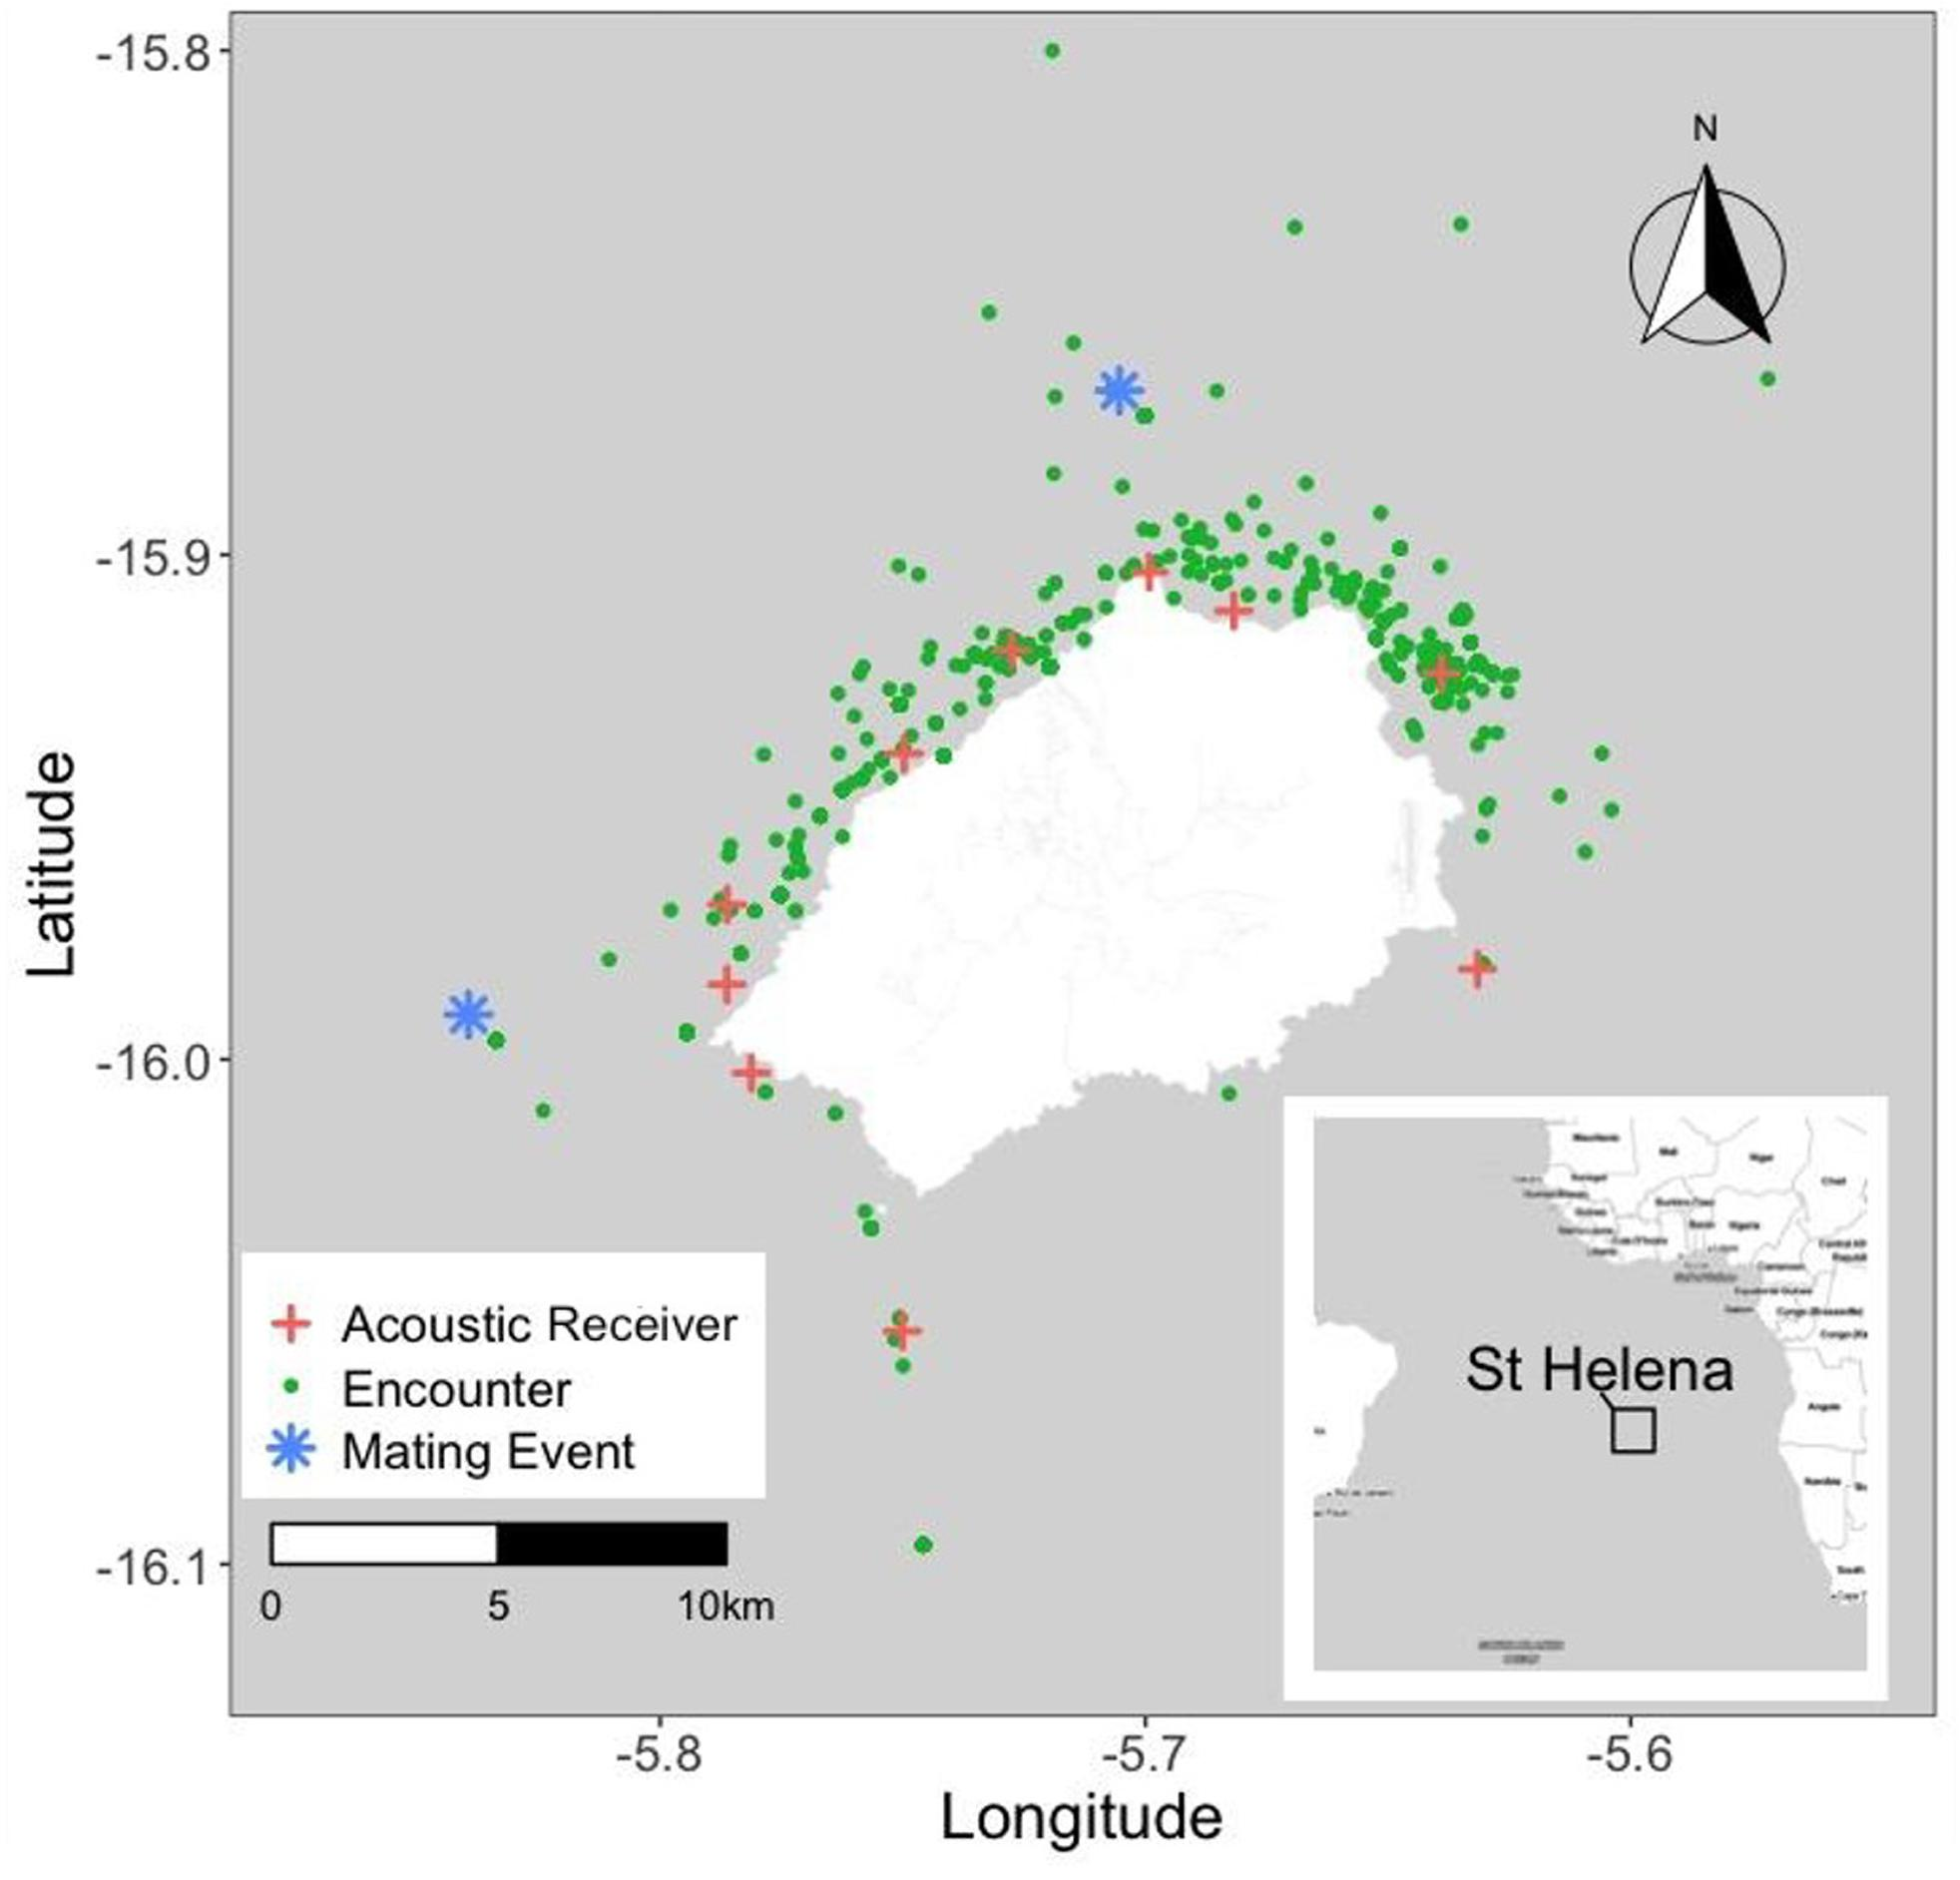 St Helena & whale shark sightings from 1999 to 2019 (green dots), sites of eyewitness accounts of mating behavior (asterisks); receivers in the acoustic array (crosses). Southeast trade winds create a difference in navigability between the calmer leeward side facing the northwest, and the rougher windward side facing southeast.(Credit Georgia Aquarium and Georgia Institute of Technology)